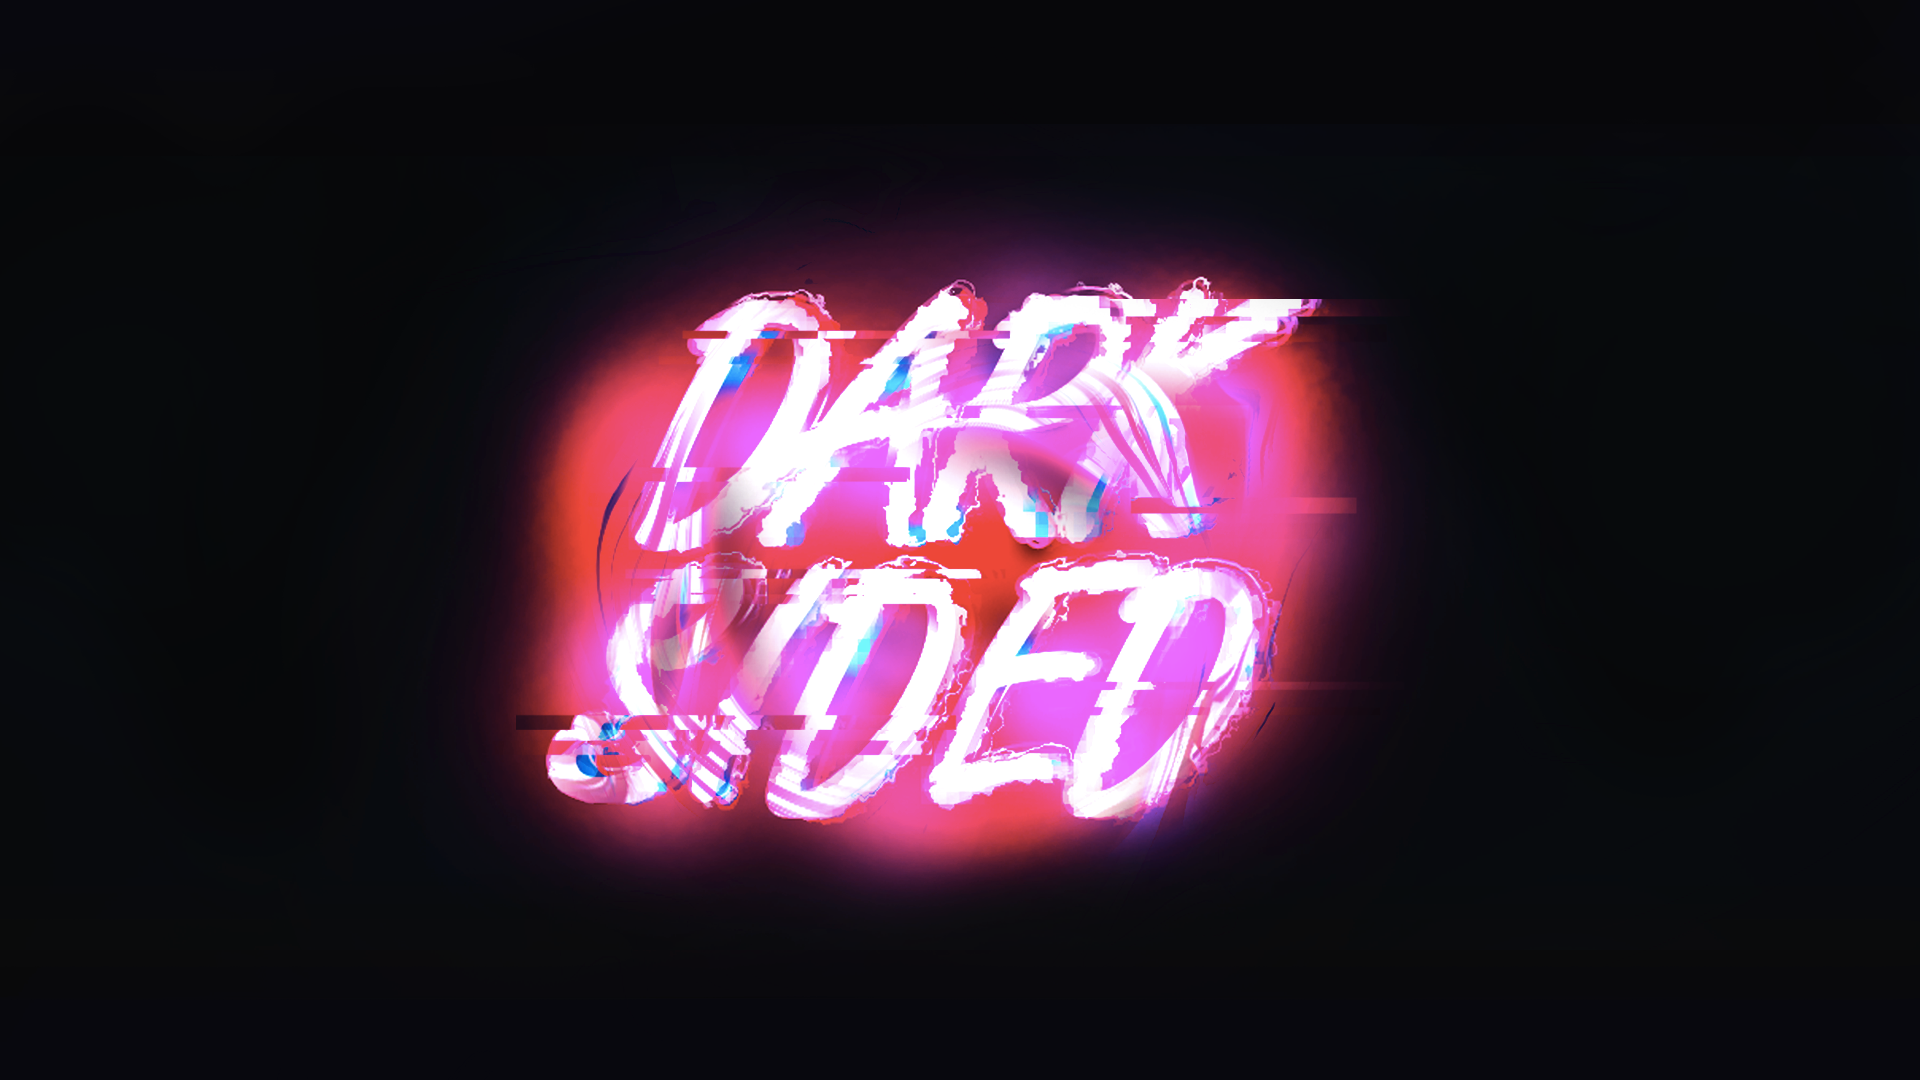 Dark Sided-Wallpaper.png